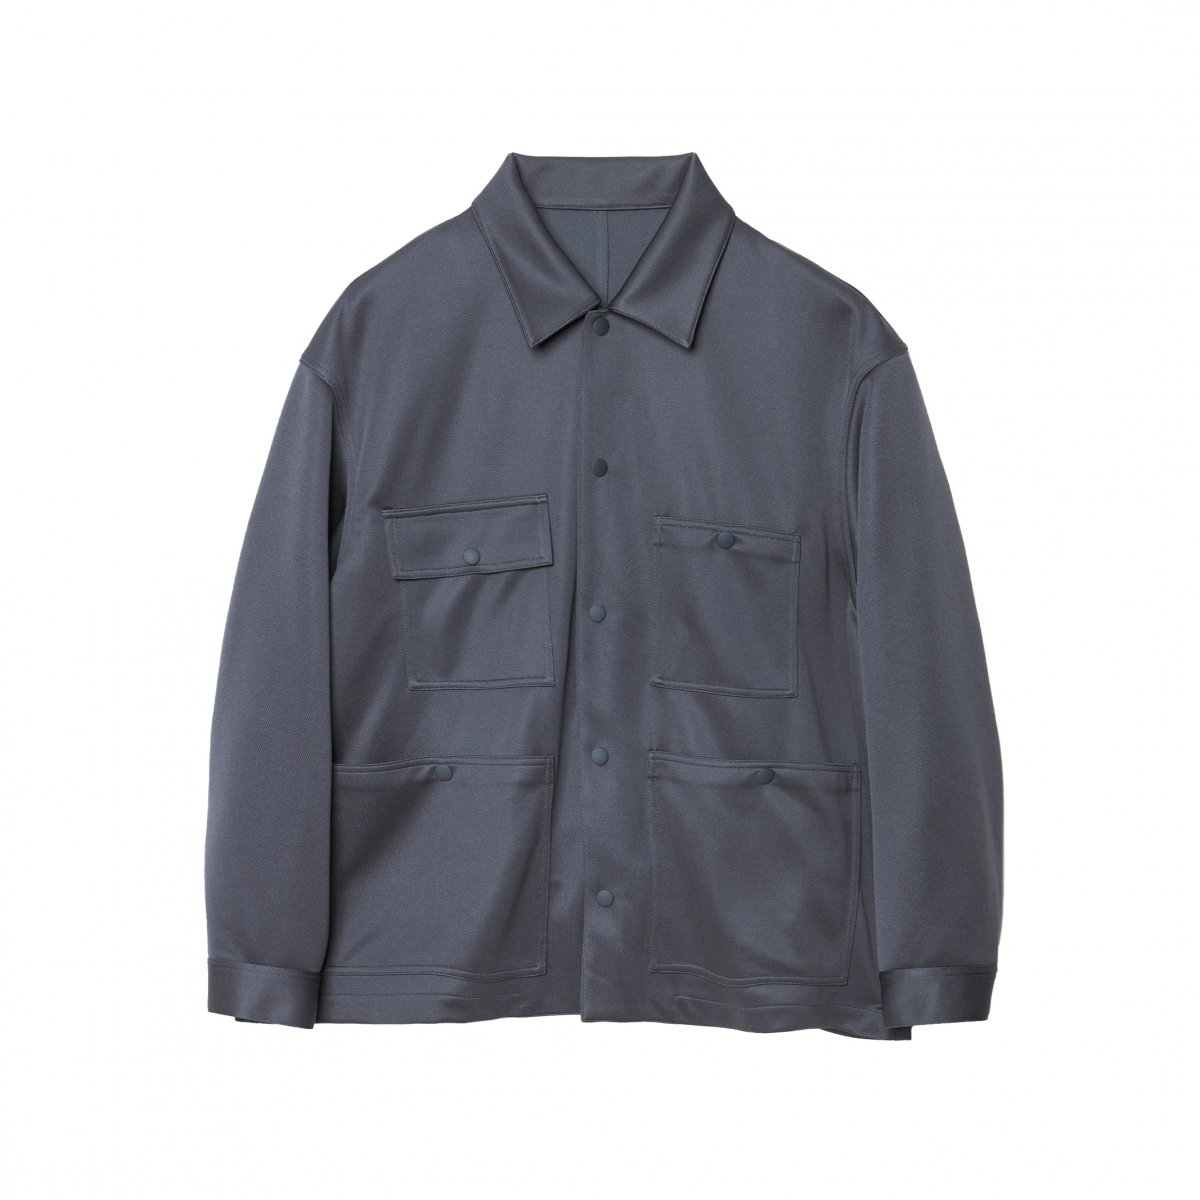 <img class='new_mark_img1' src='https://img.shop-pro.jp/img/new/icons5.gif' style='border:none;display:inline;margin:0px;padding:0px;width:auto;' />JERSEY CPO BLOUSON / GREY